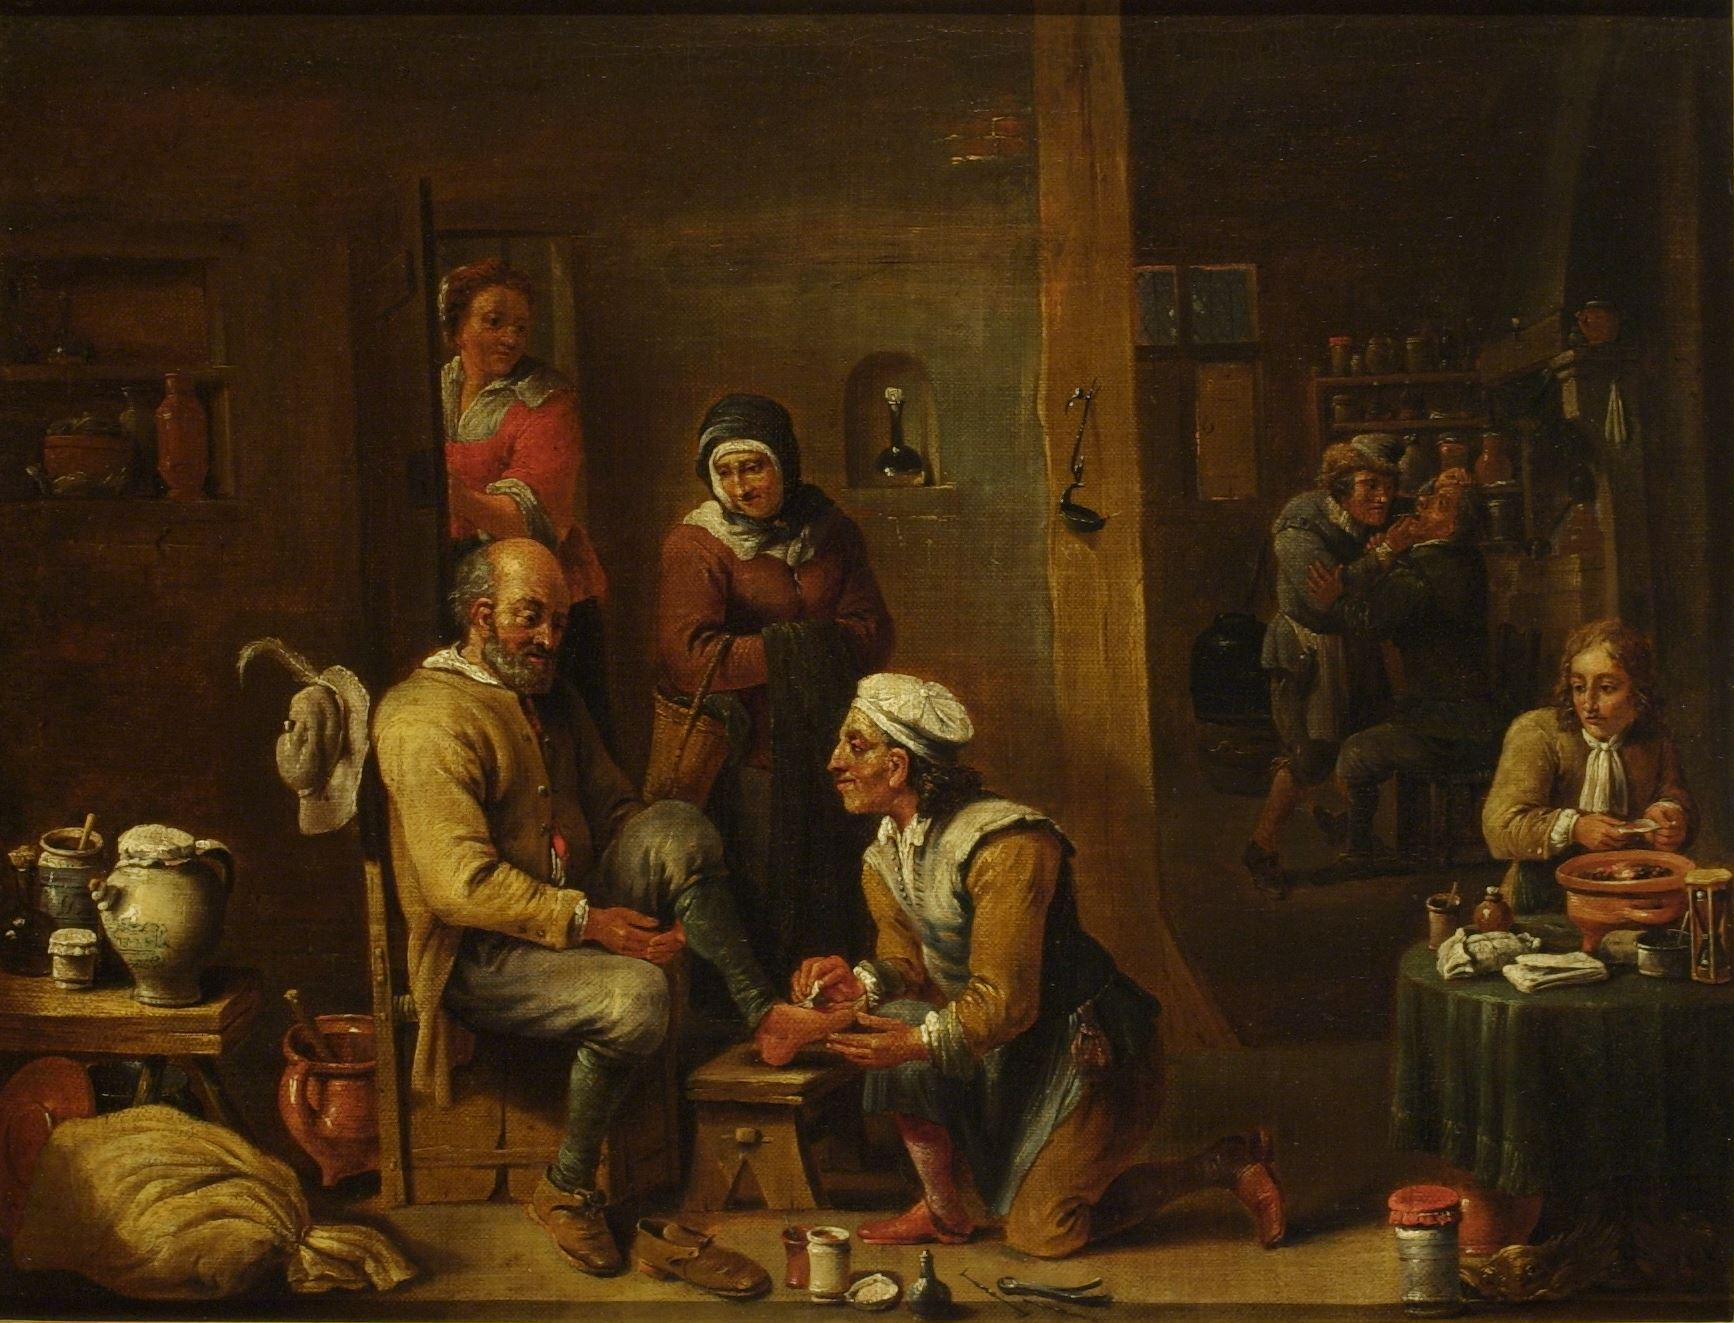 Here, the woman in brown is prob. the patient's wife, while the woman in red could be the doctor's wife or an assistant #MuseumMonday https://t.co/XxvEF7vWuP